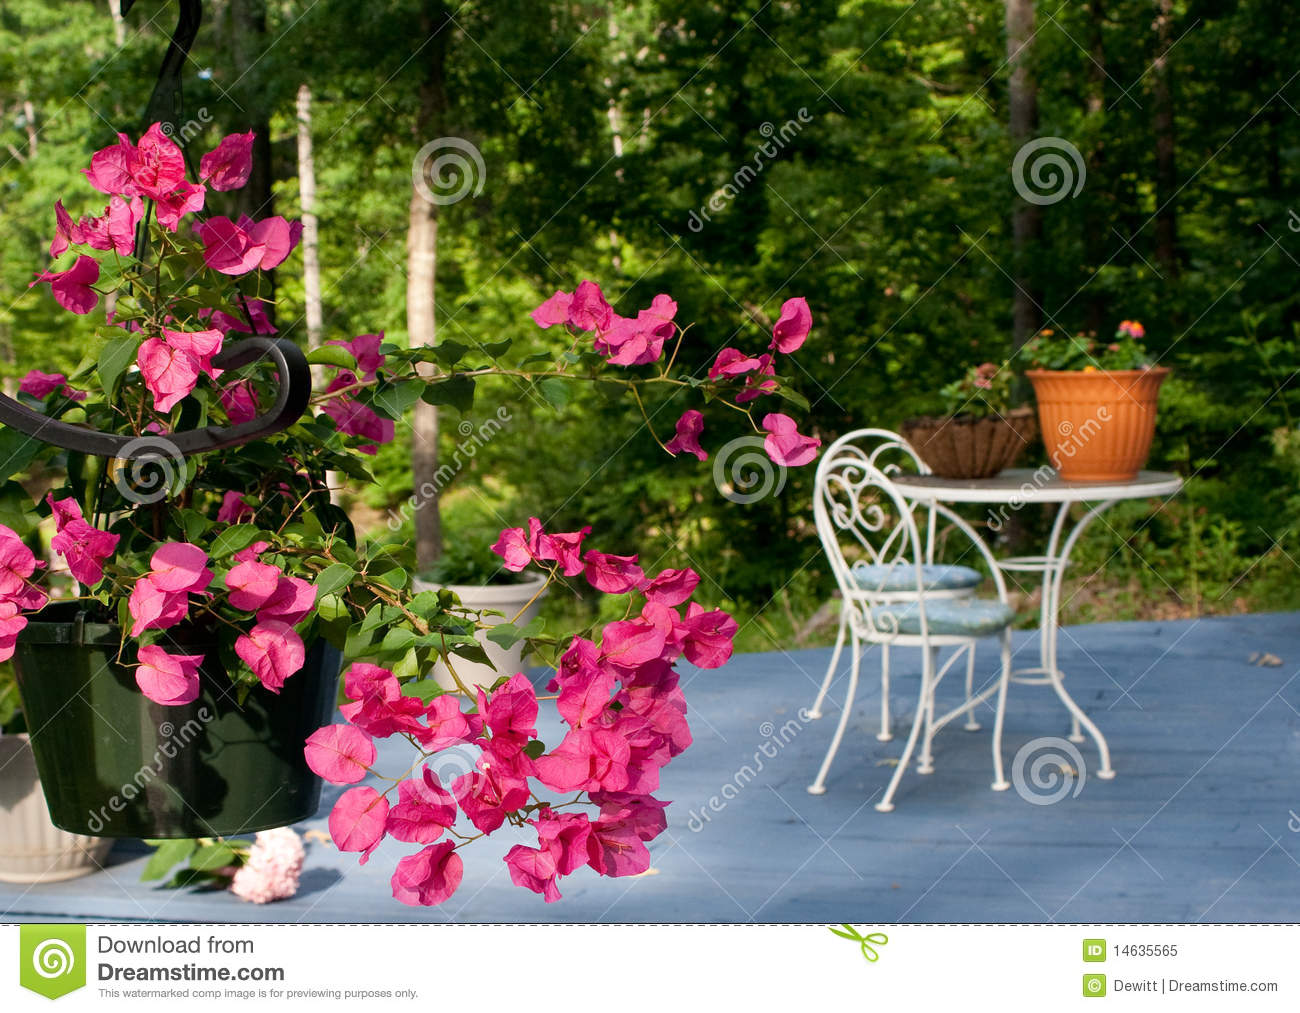 Patio flowers and patio table.